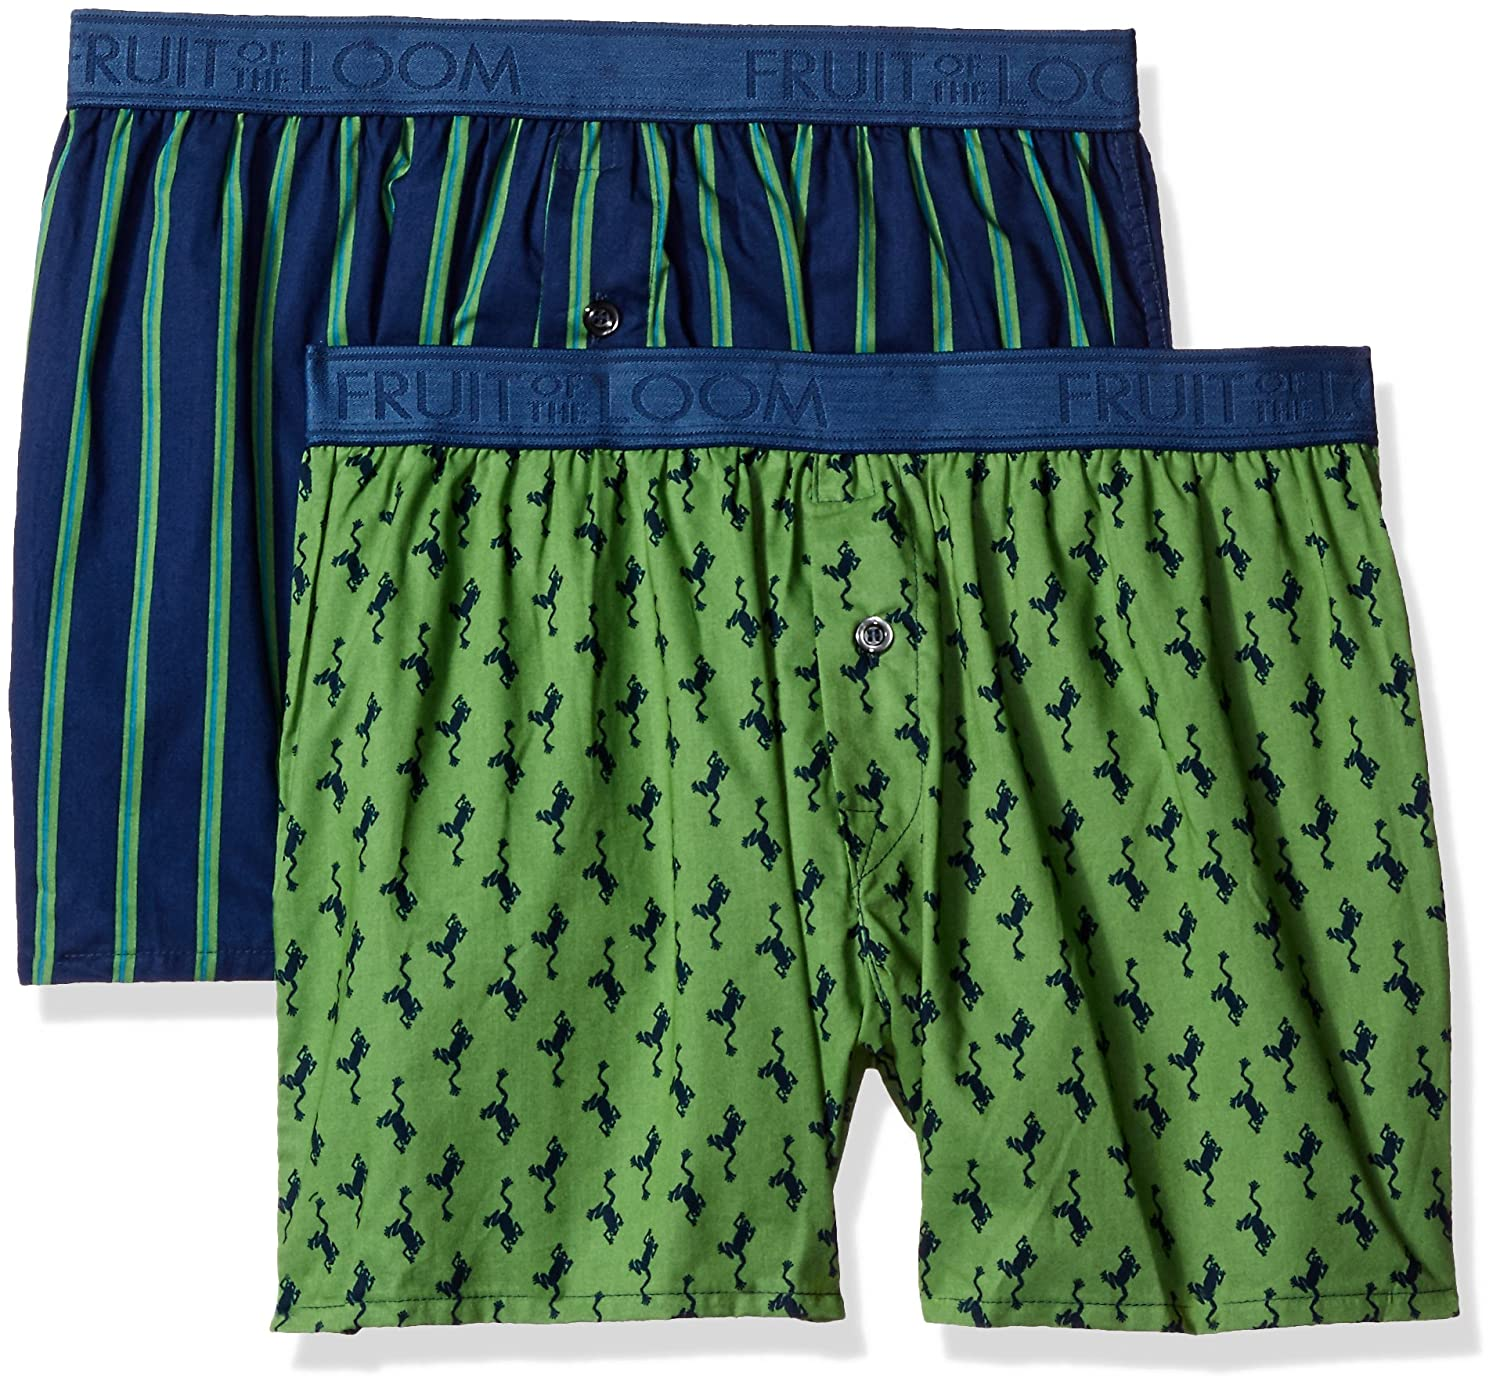 Fruit of the Loom Men's Cotton Stretch Boxer (Pack of 2)-Dup 2P550L1